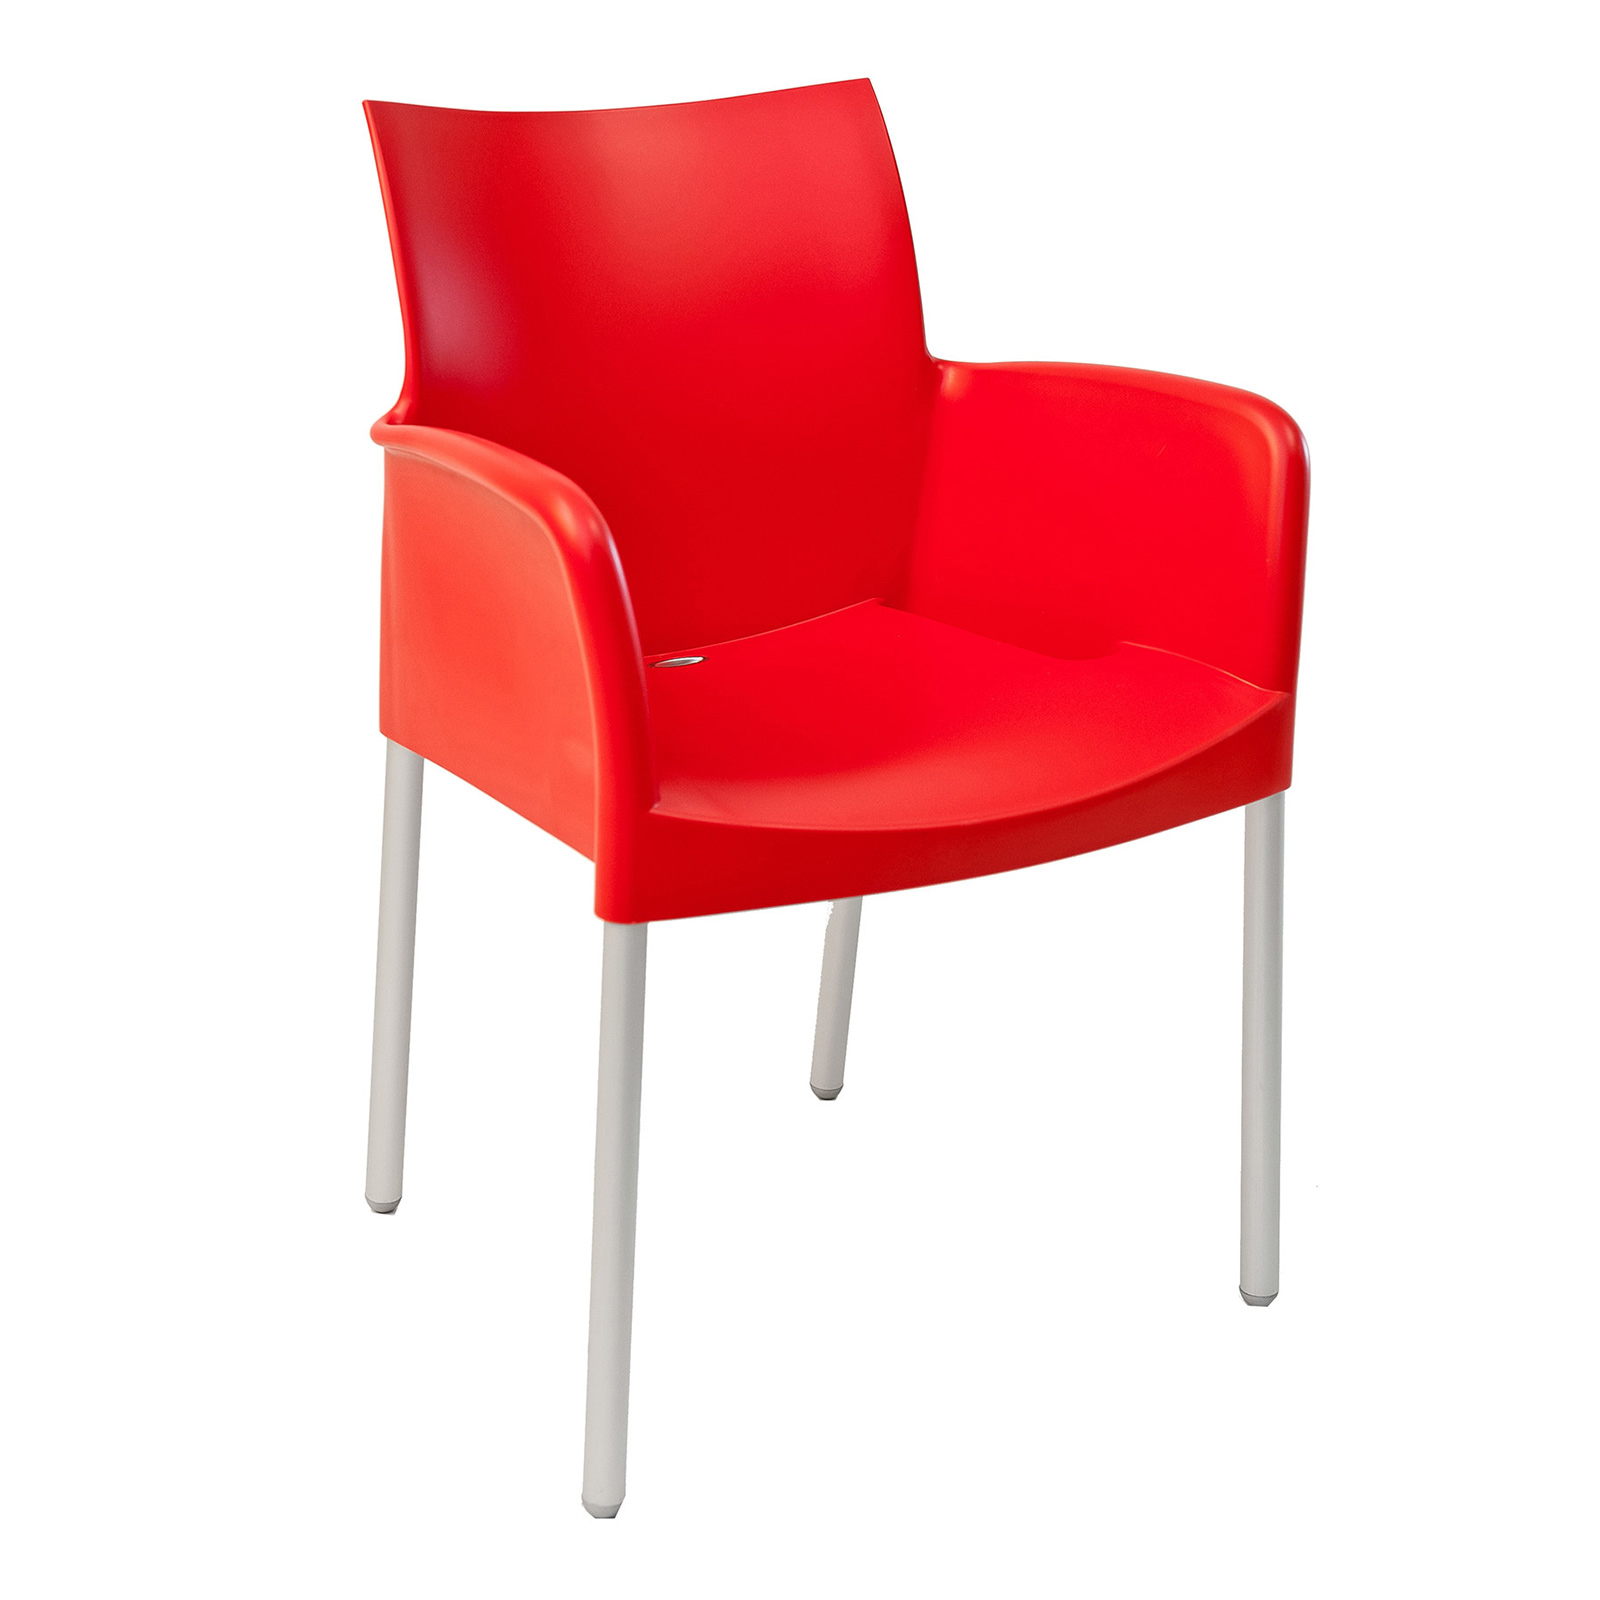 Florida Seating ICE-A/ROJO chair, armchair, stacking, outdoor